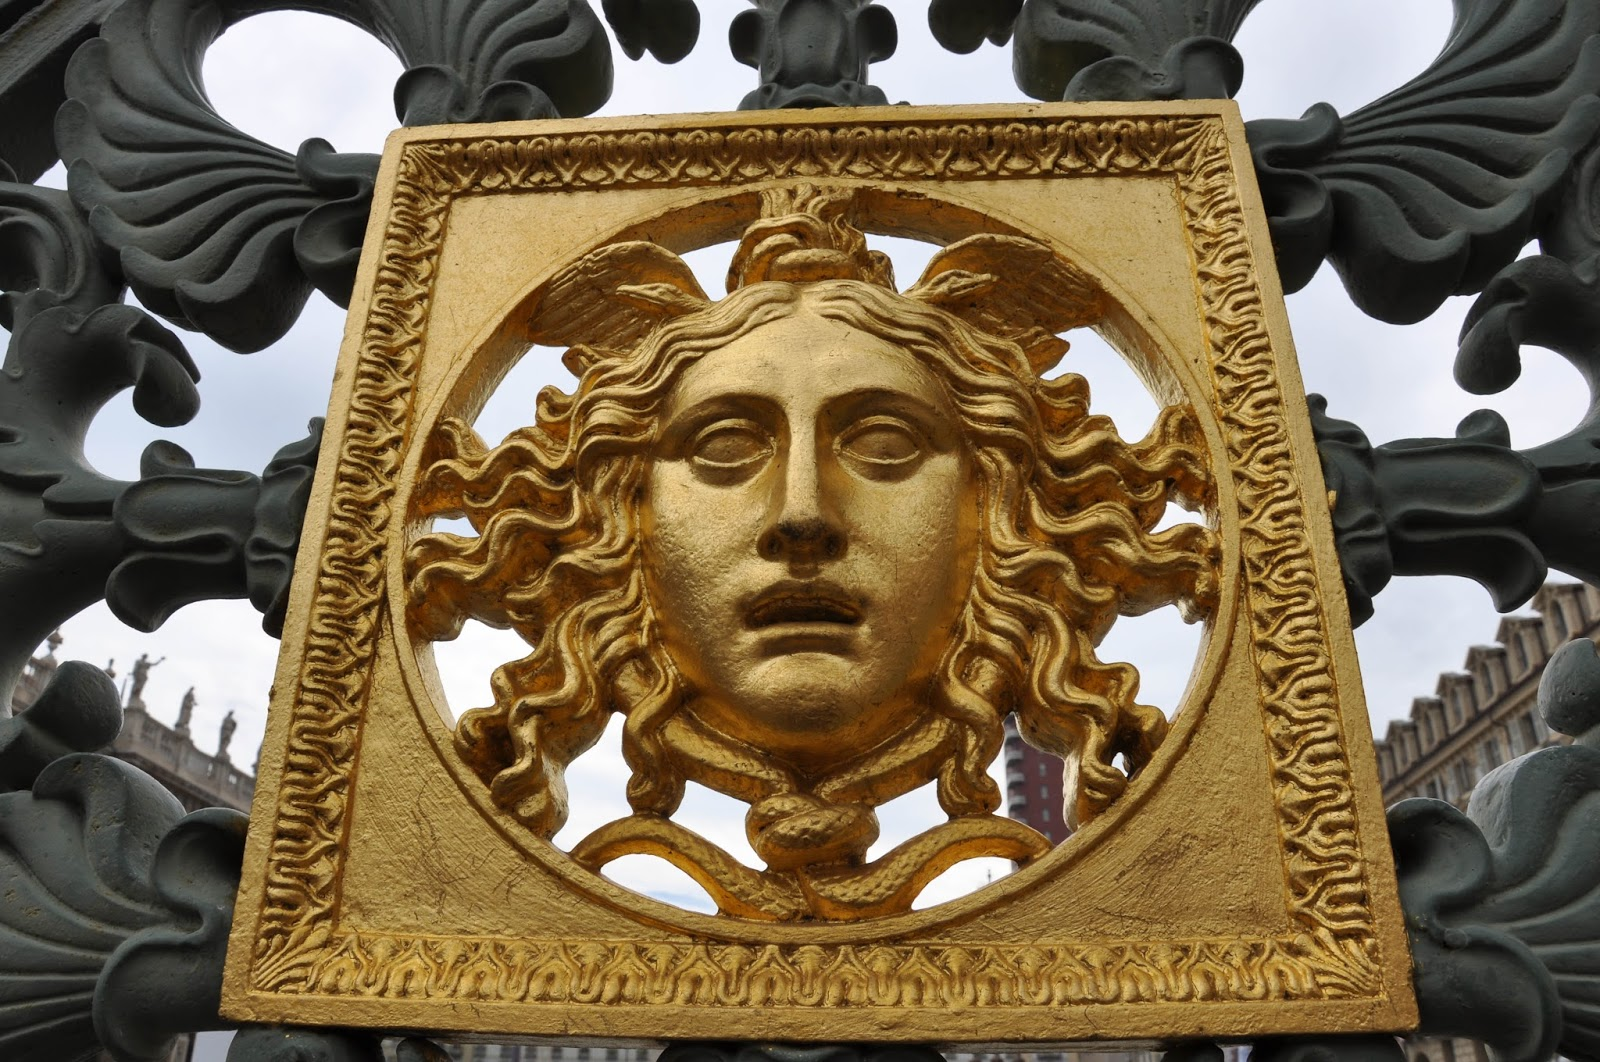 Ornamentation on the fence of the Royal Palace, Turin, Italy